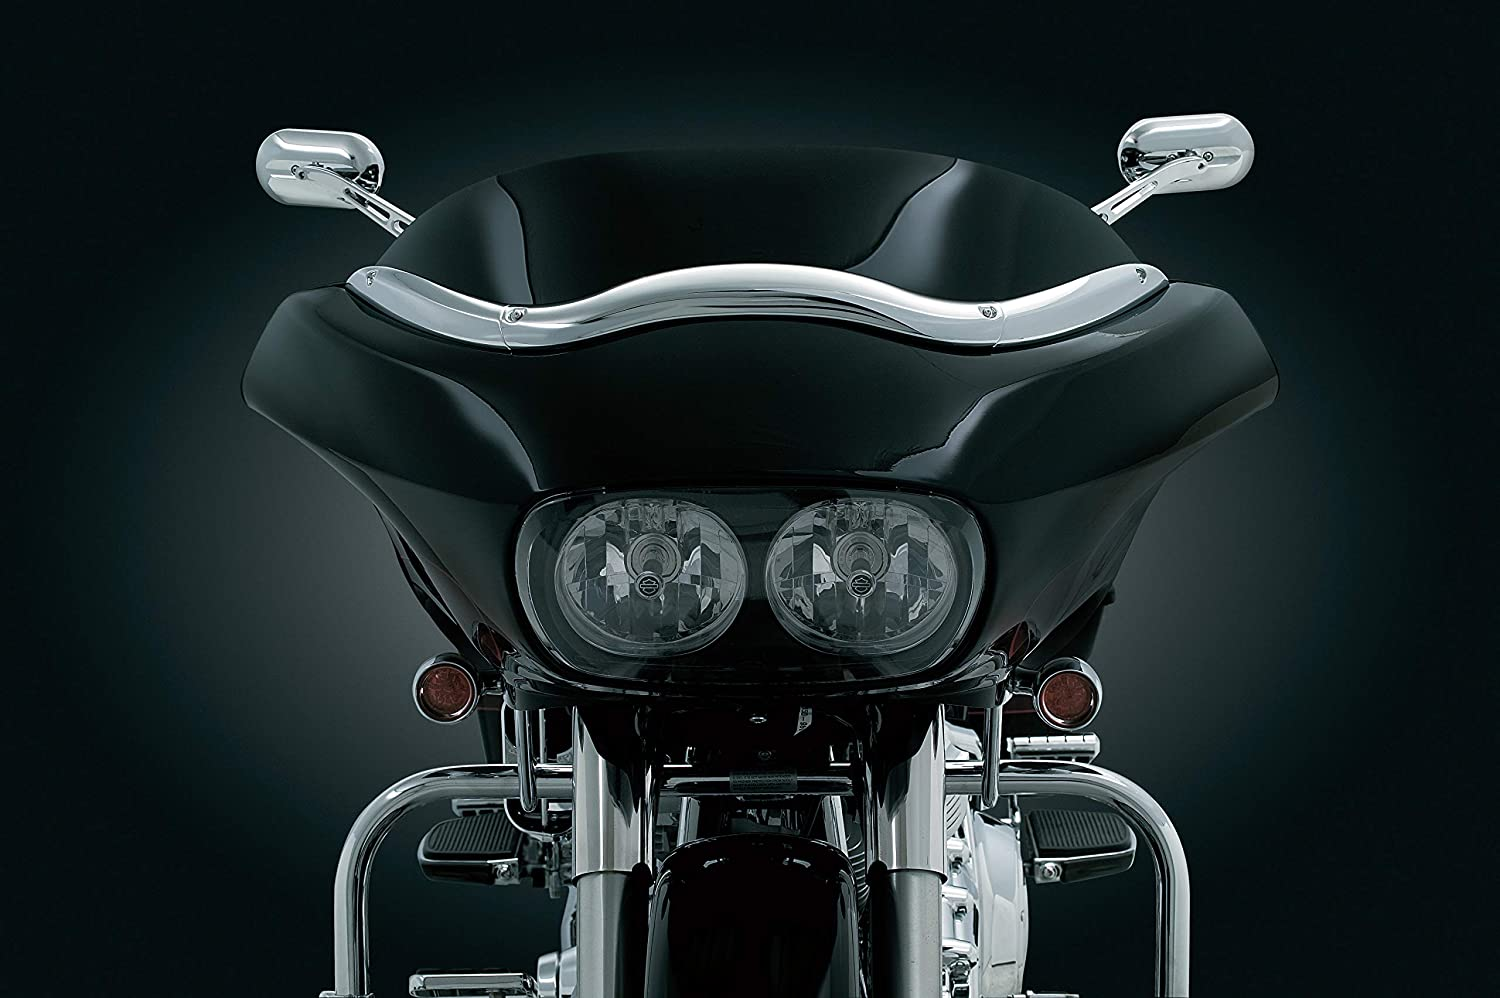 Kuryakyn 1370 Motorcycle Accent Accessory: Windshield Windscreen Trim for 1998-2013 Harley-Davidson Road Glide Motorcycles, Chrome